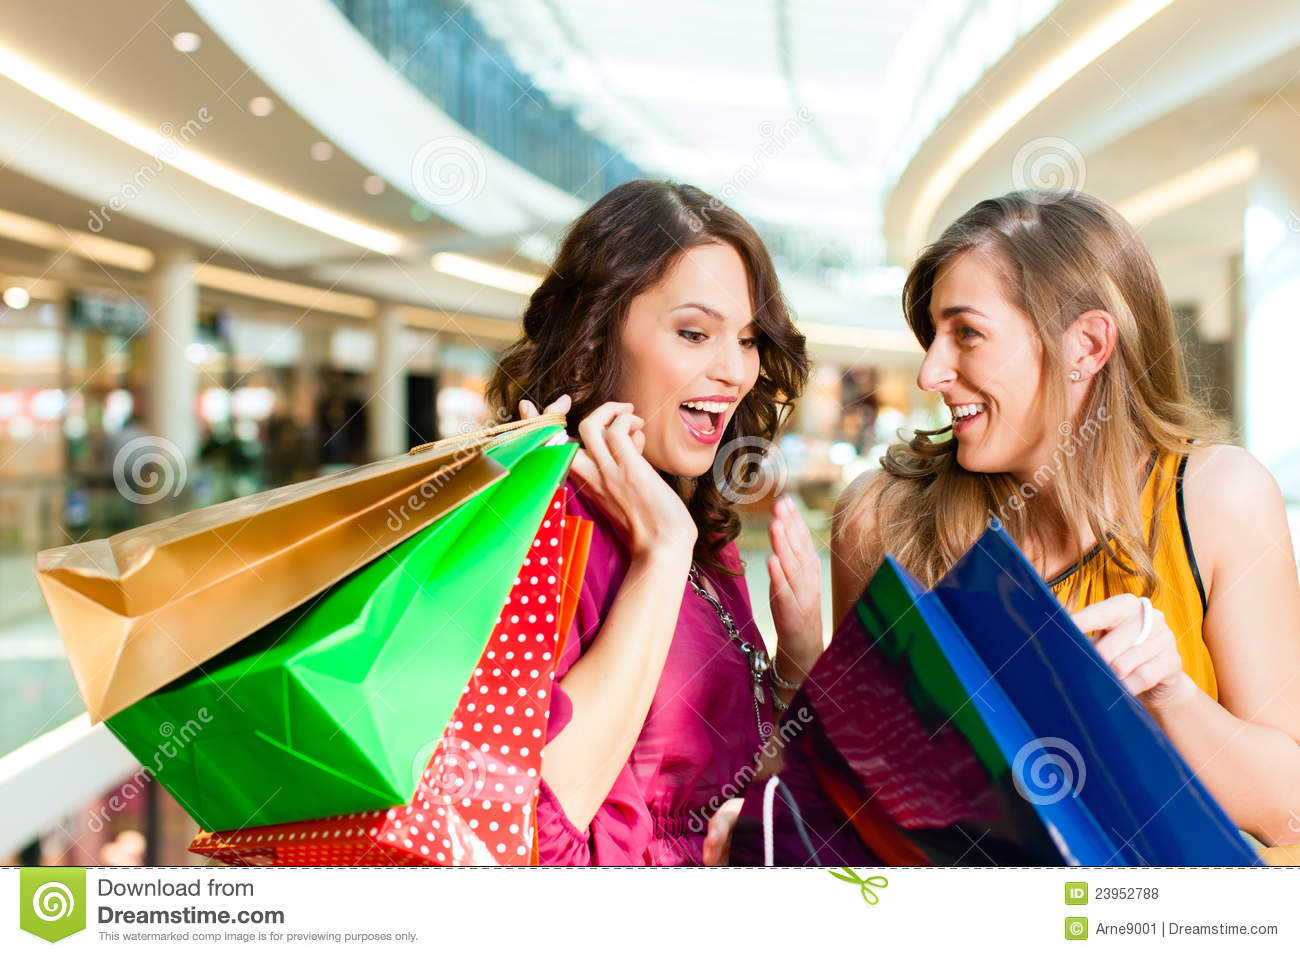 page danielle shopping with best friend